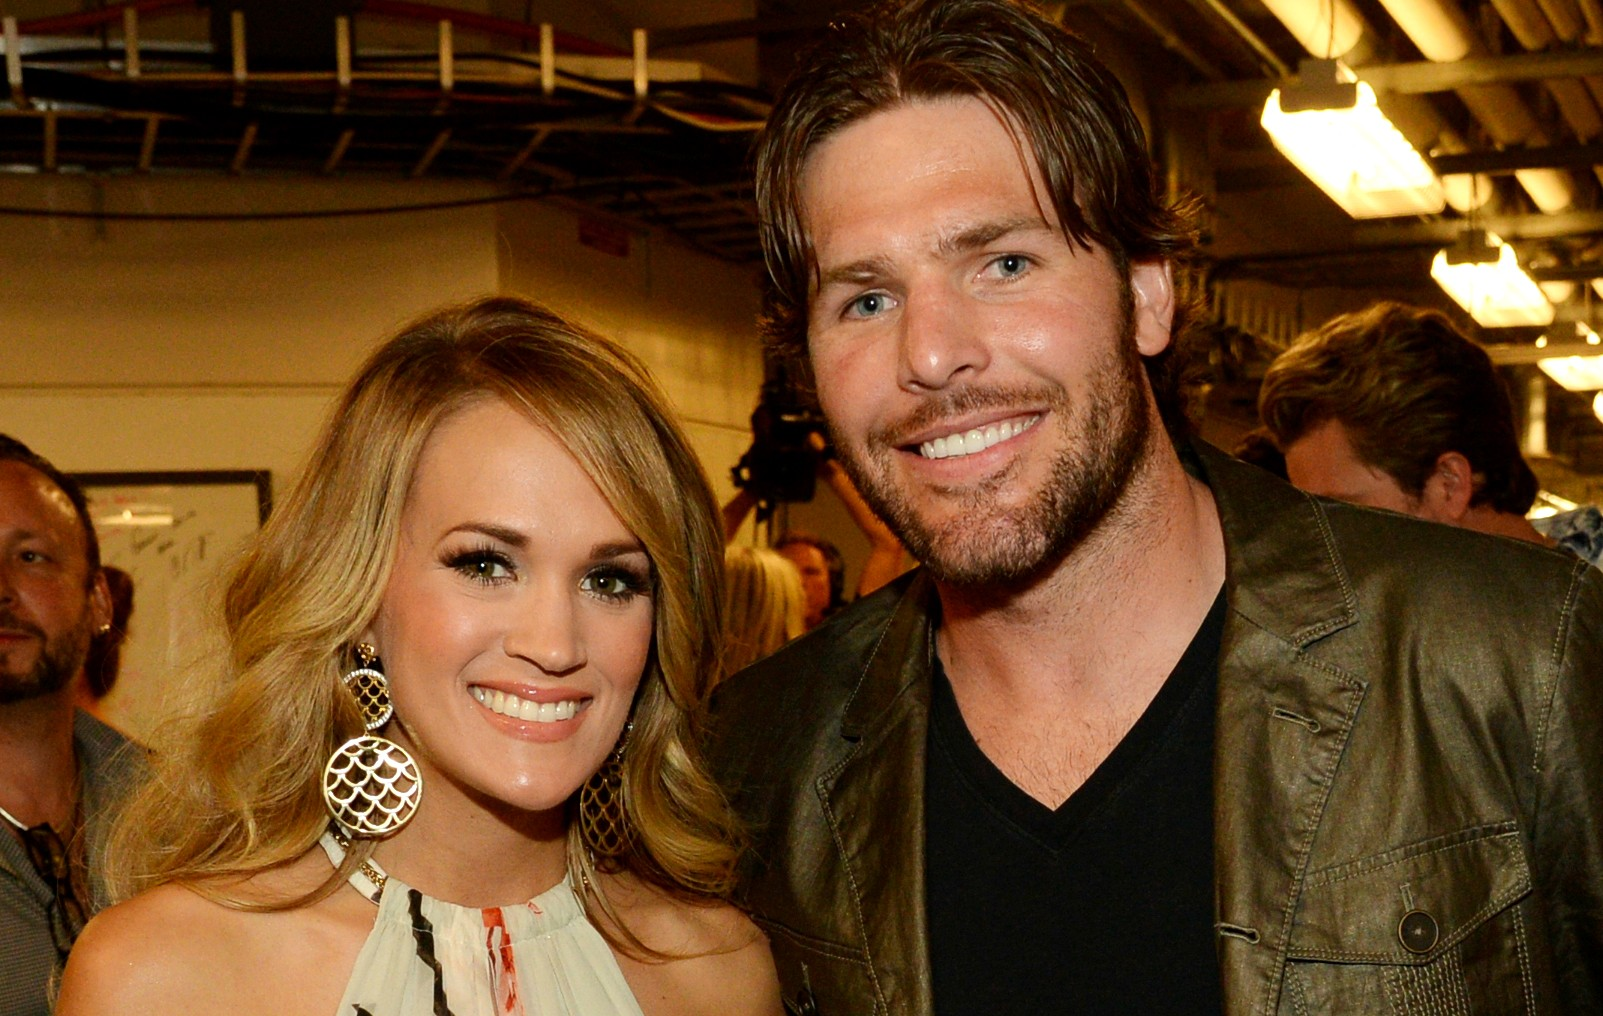 Carrie Underwood e Mike Fisher em junho deste ano. (Foto: Getty Images)